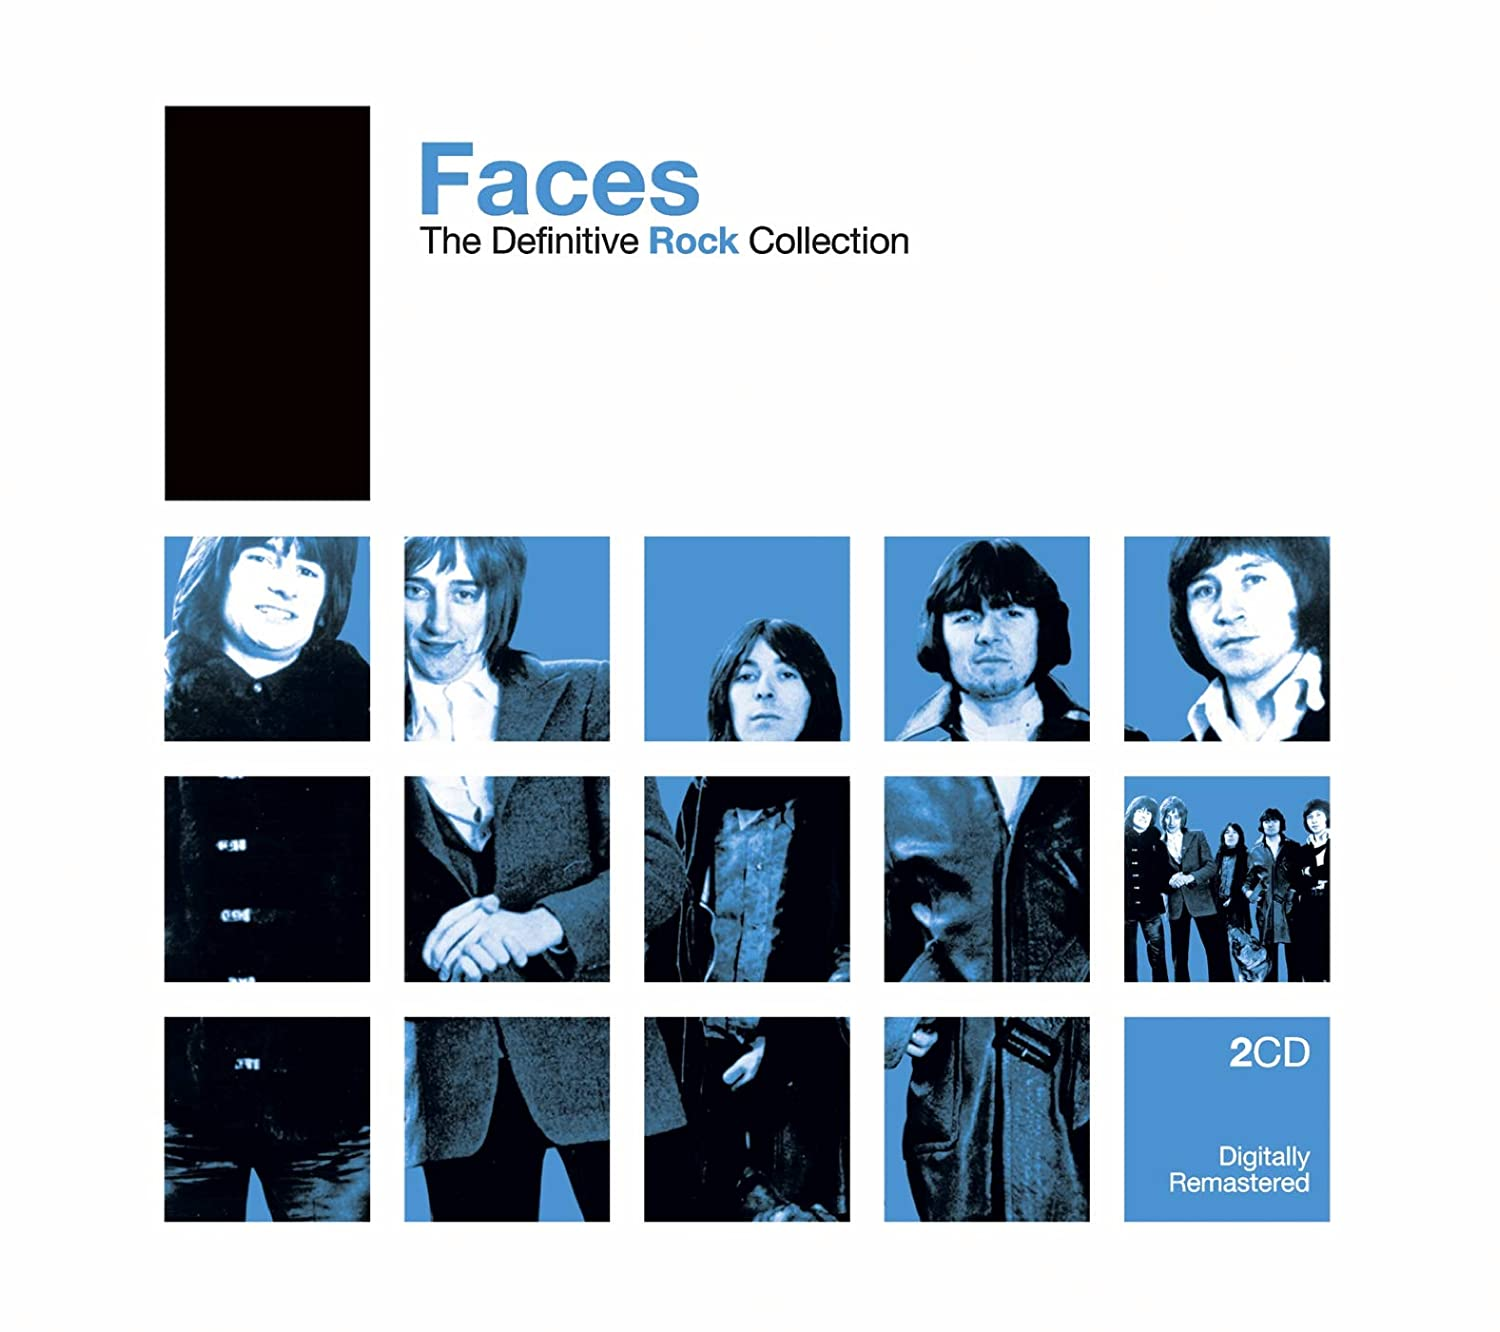 Definitive Rock Collection,the